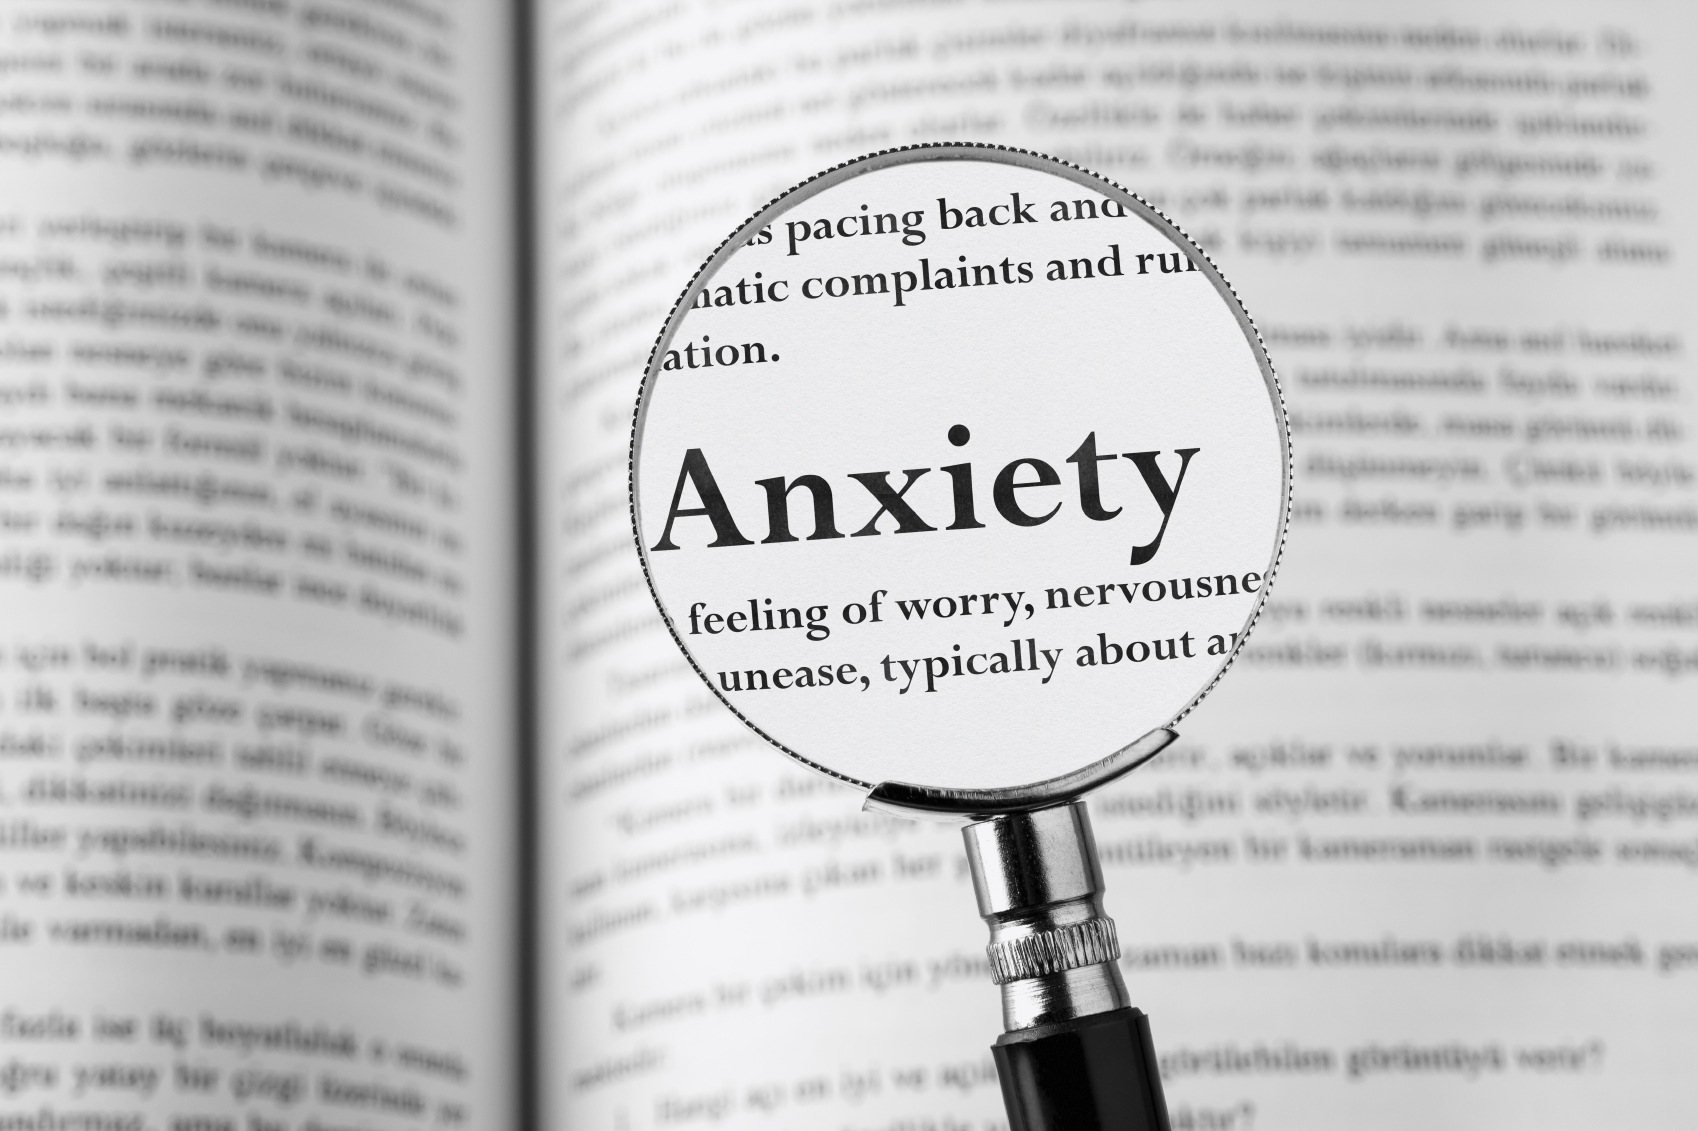 The severity of anxiety, impulsiveness or mood swings should be considered when addressing a mental illness.